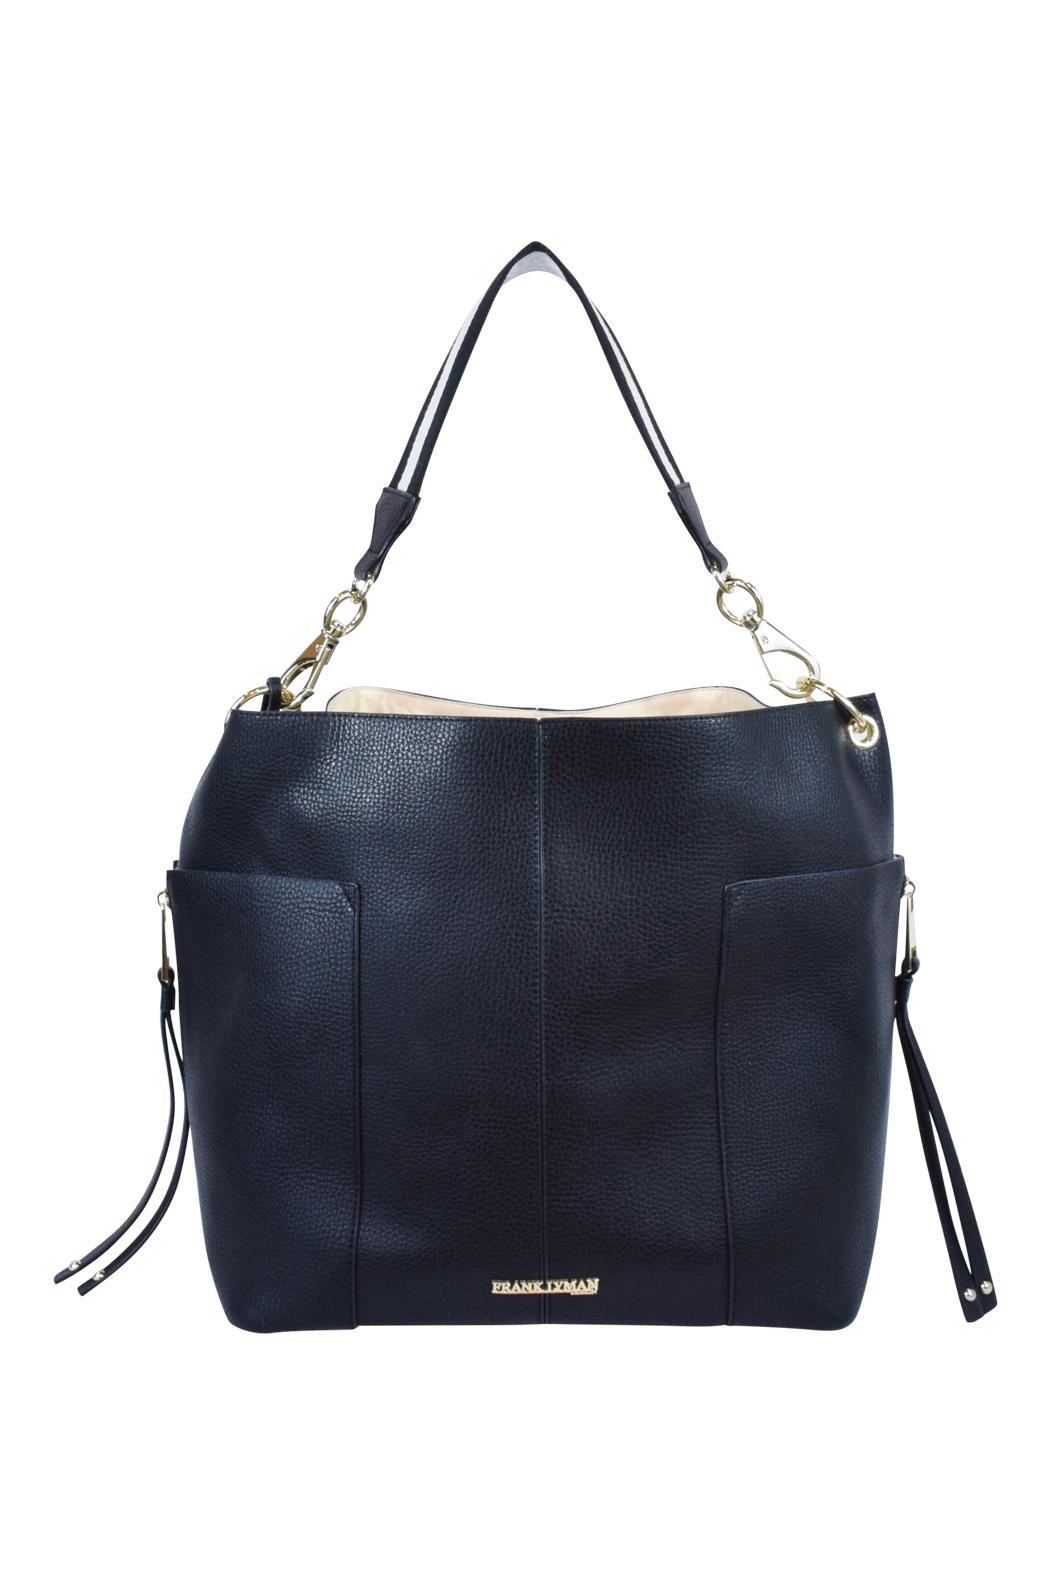 Frank Lyman Two Toned Tote - Front Full Image